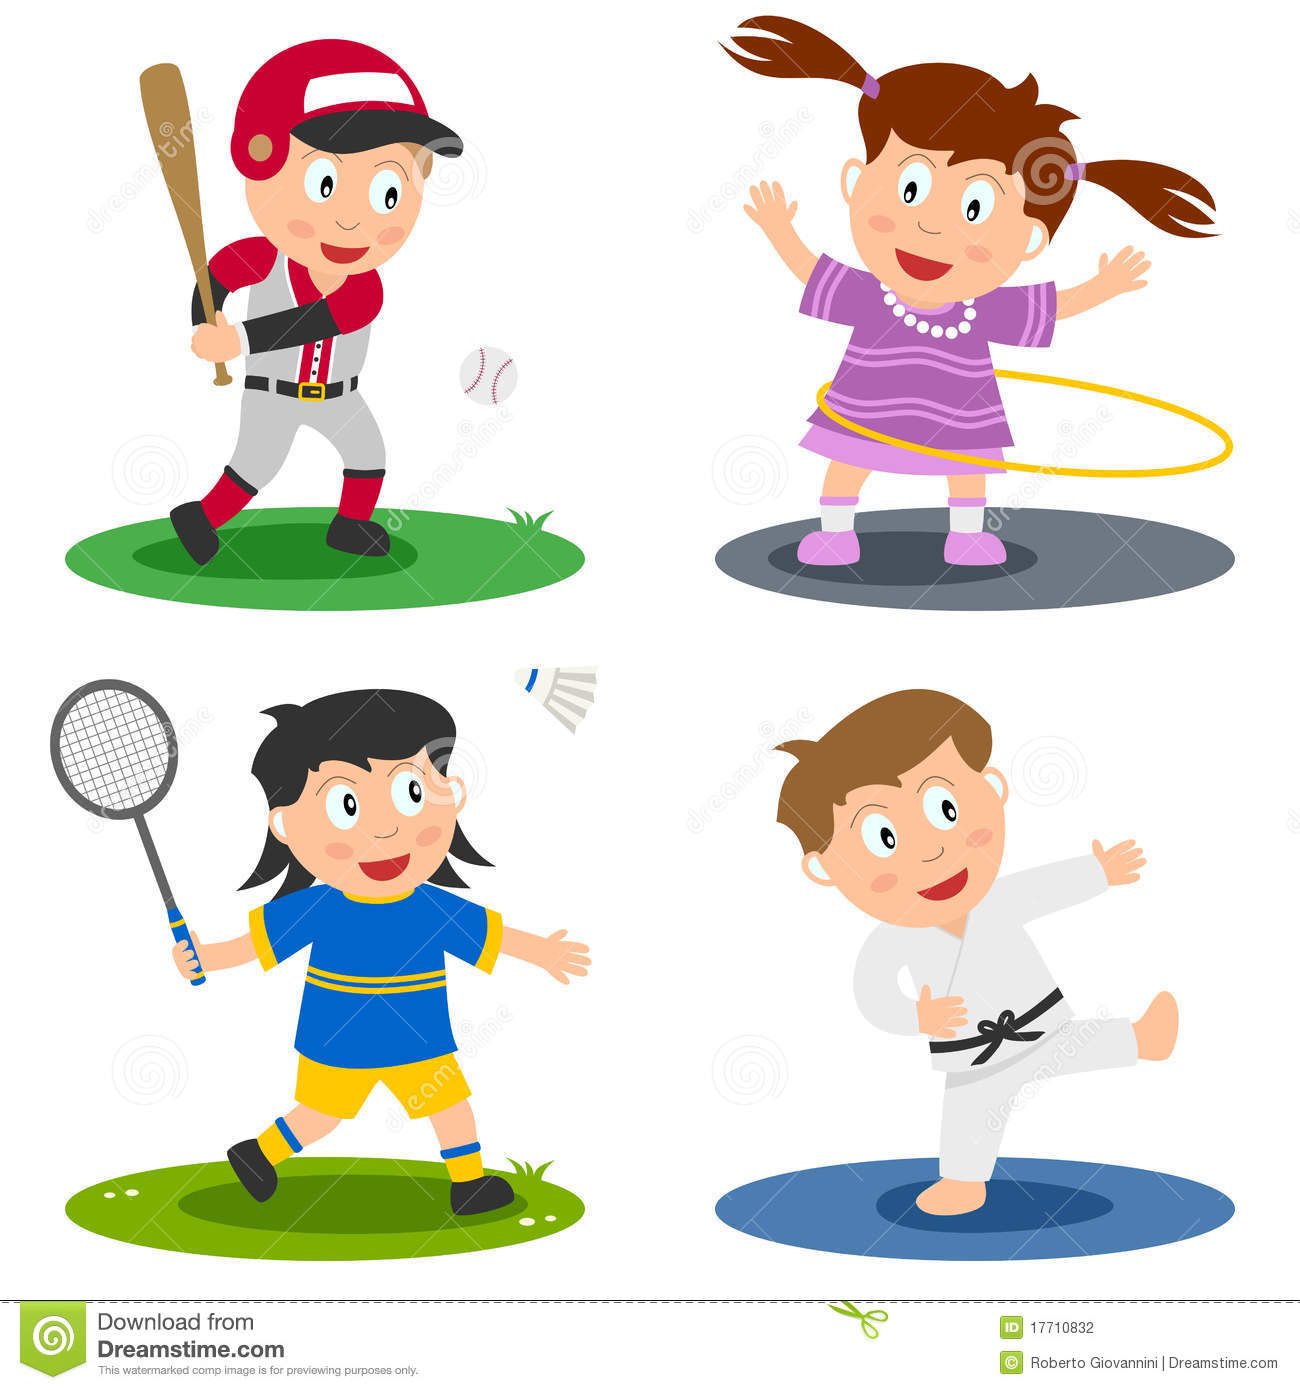 Athletic clipart youth sport. Kids sports pictures group